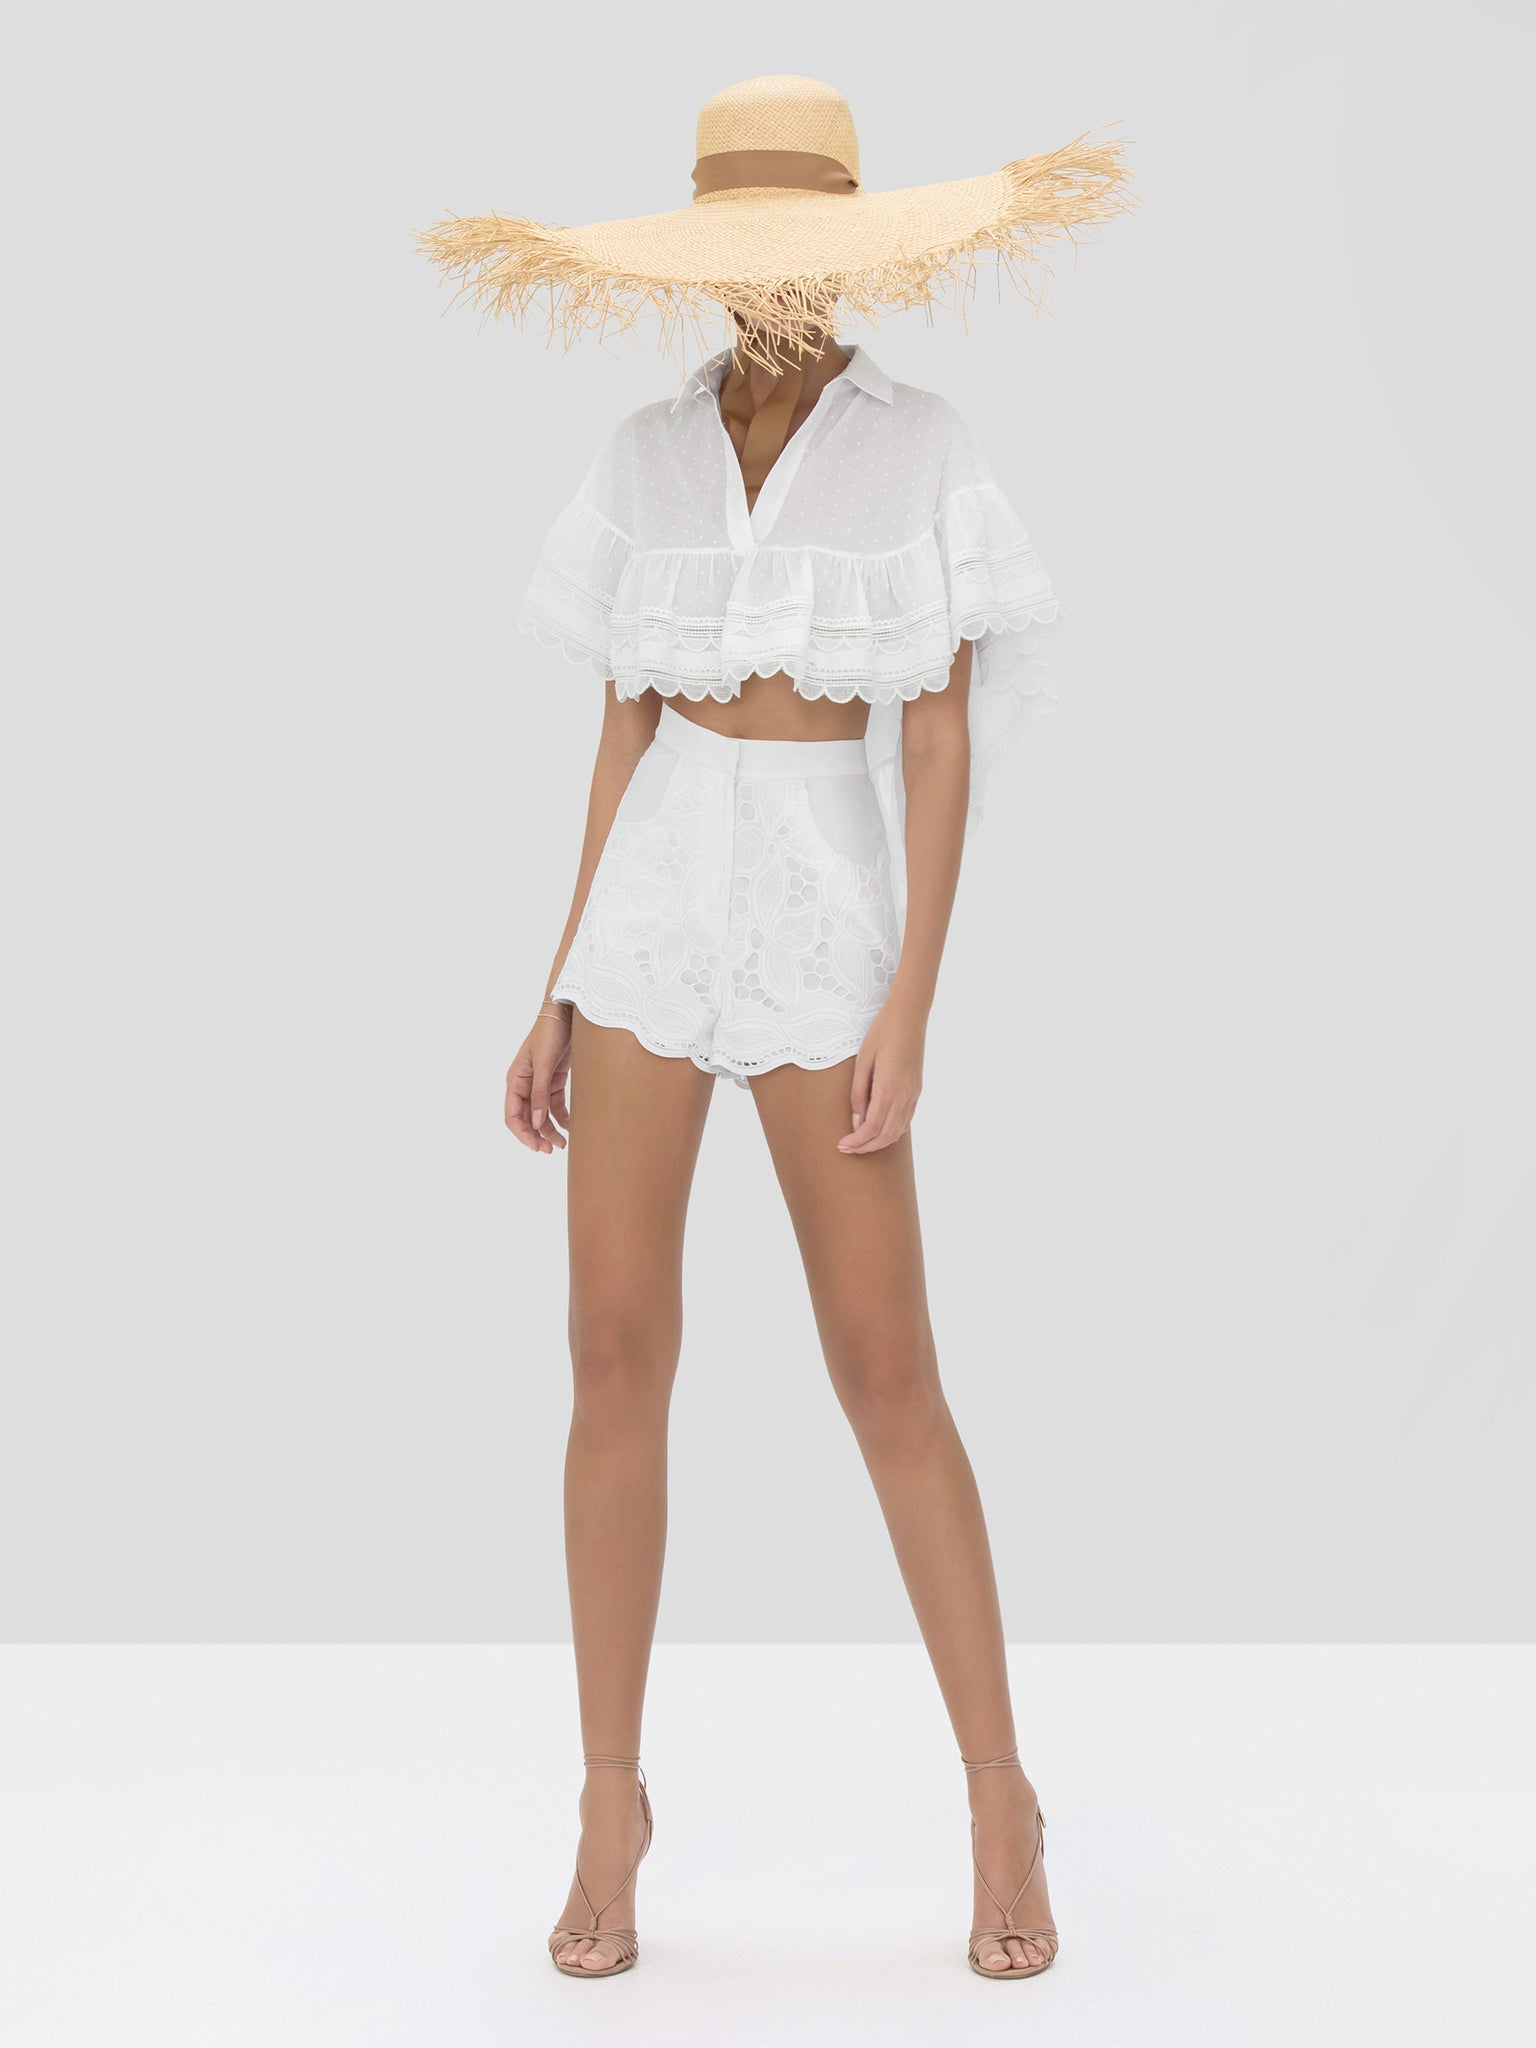 Alexis Casimir Top and Bowes Short in White from Spring Summer 2020